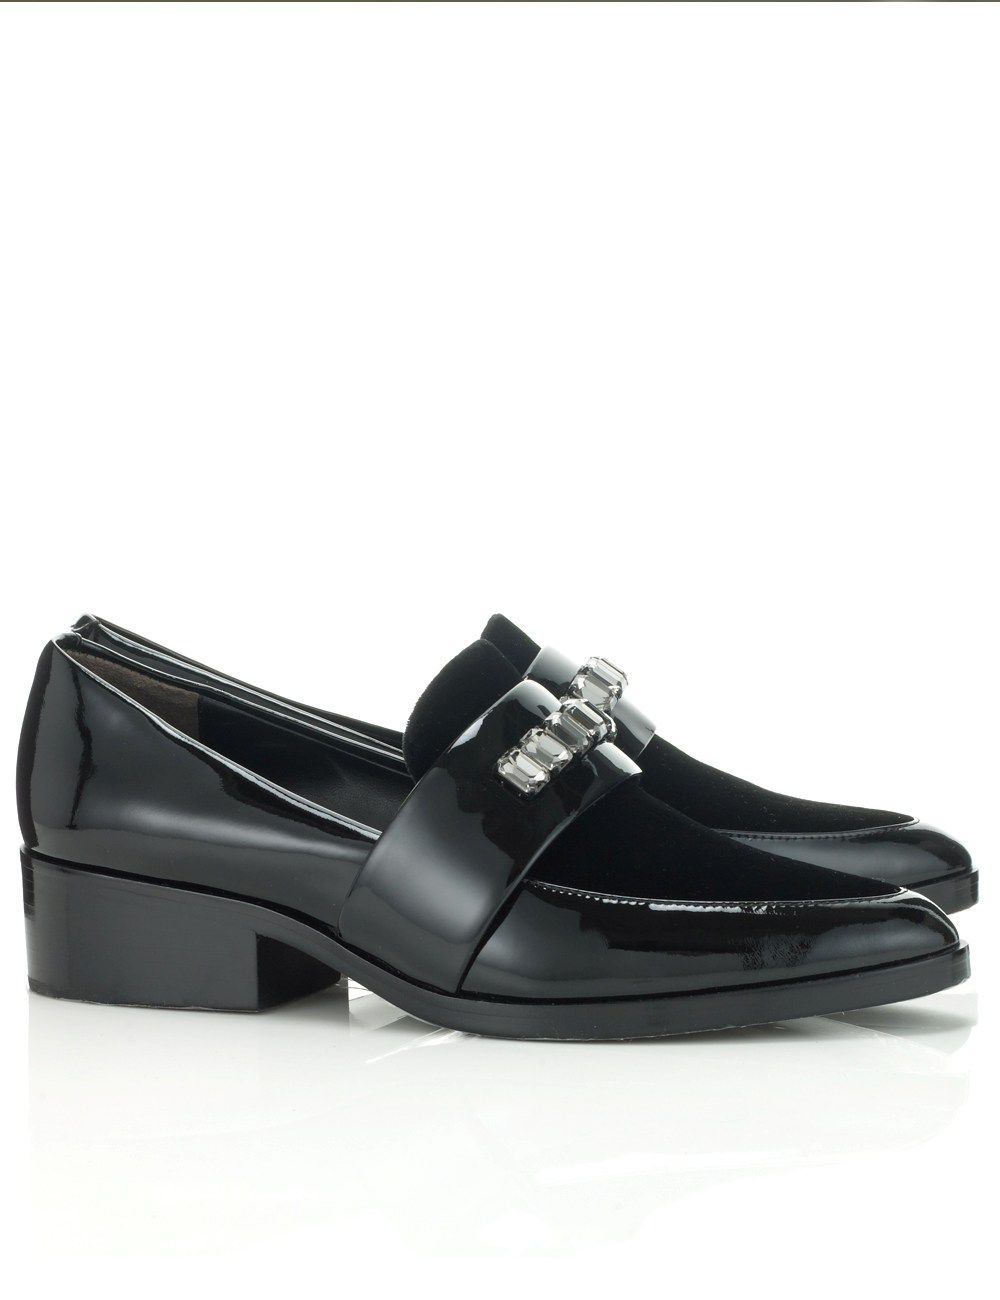 cdc6a0353dcc2 Black Embellished Quinn Loafers